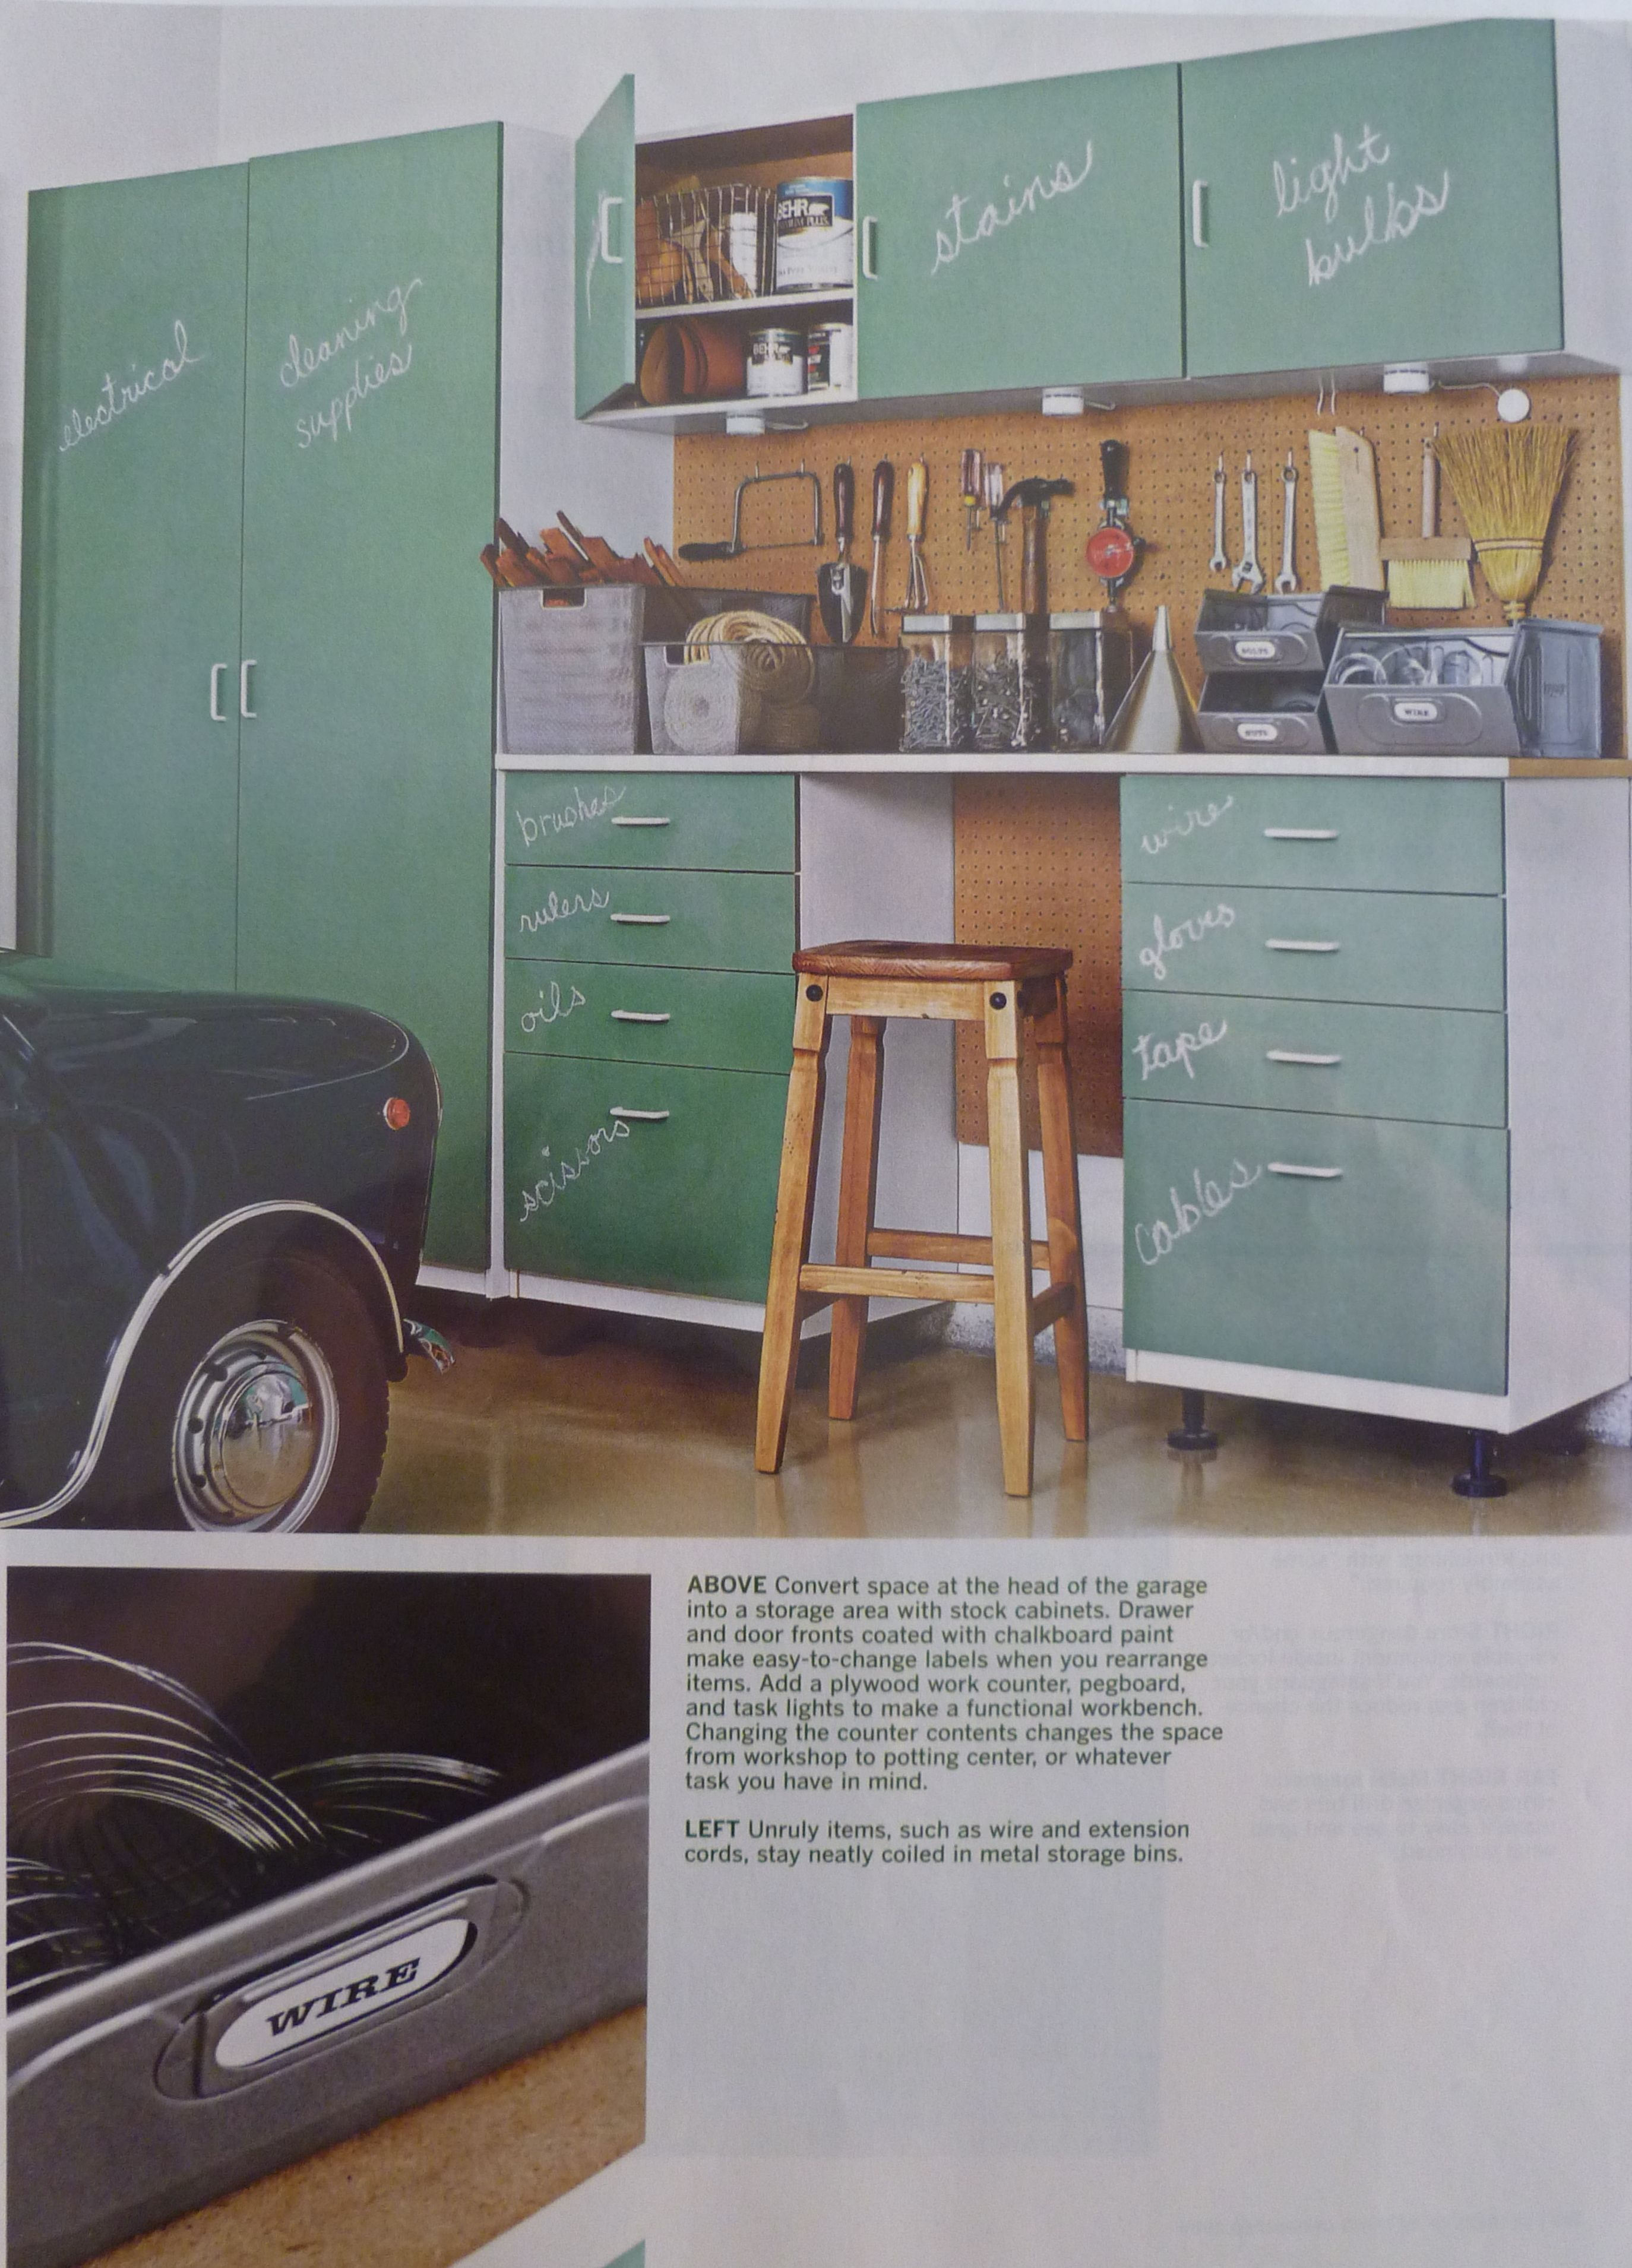 Chalkboard doors!  Great way for anyone in the family to locate dad's stuff (or maybe not!!)